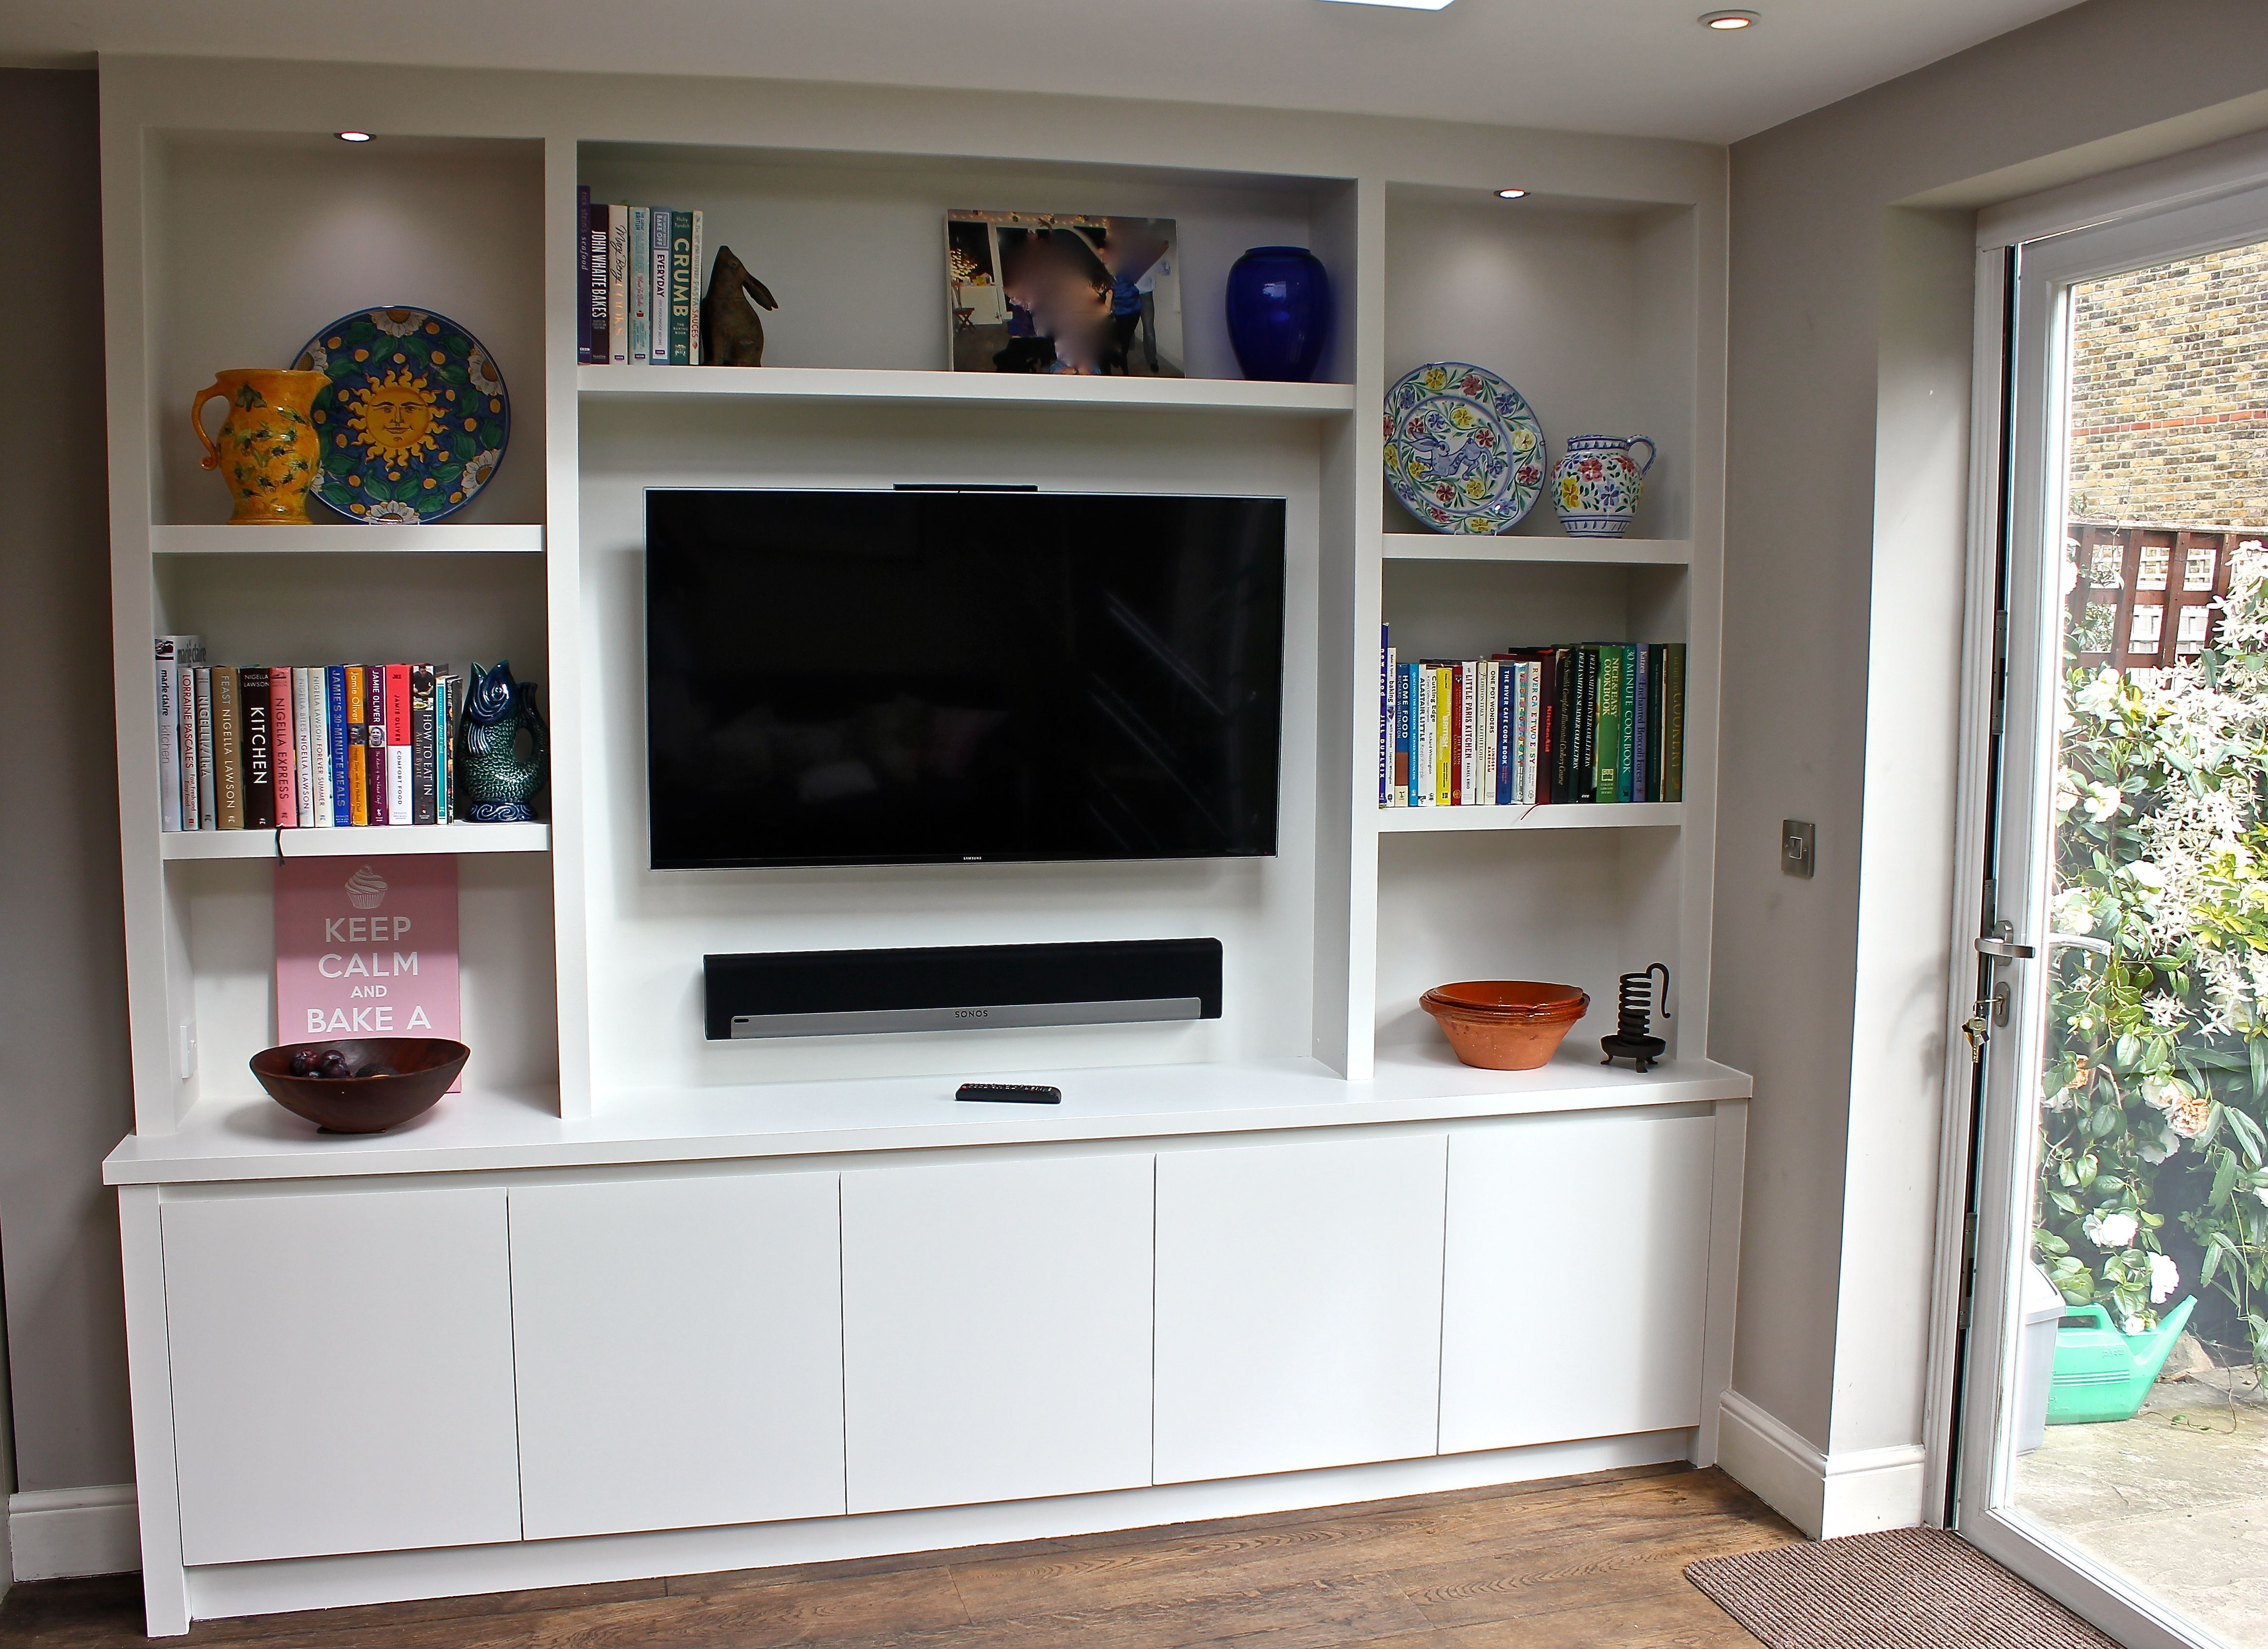 A Contemporary Bespoke Bookcase Display Unit Ideal Storage For Plasma Screen With Sky Box